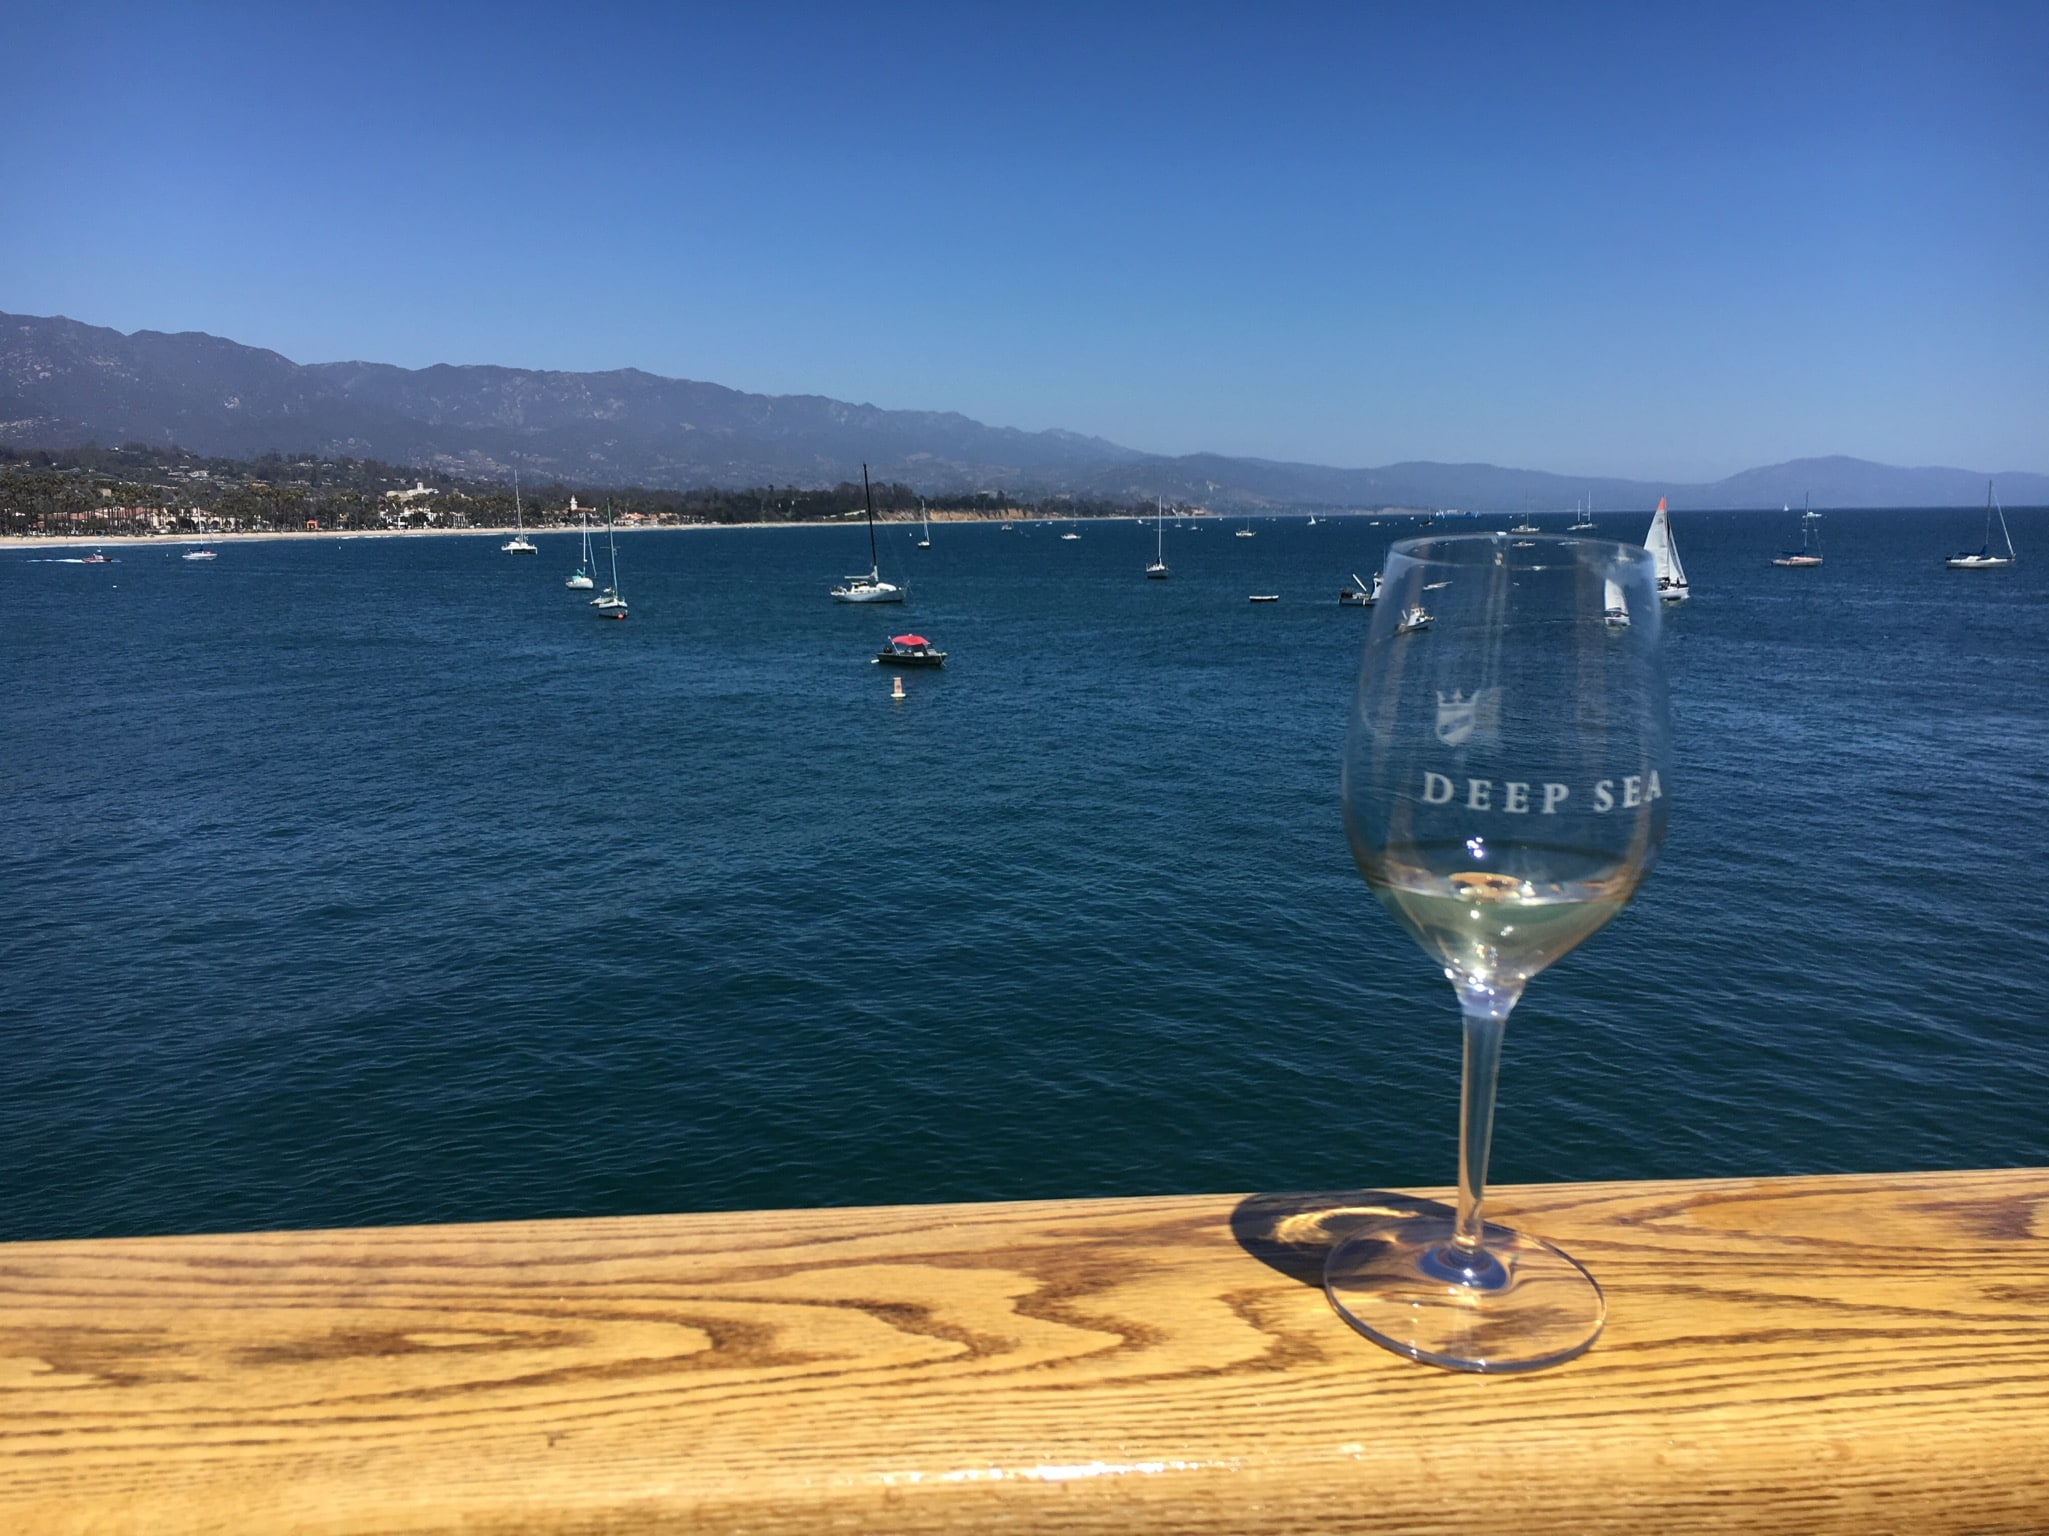 Wine tasting wine glass on Stearns Wharf